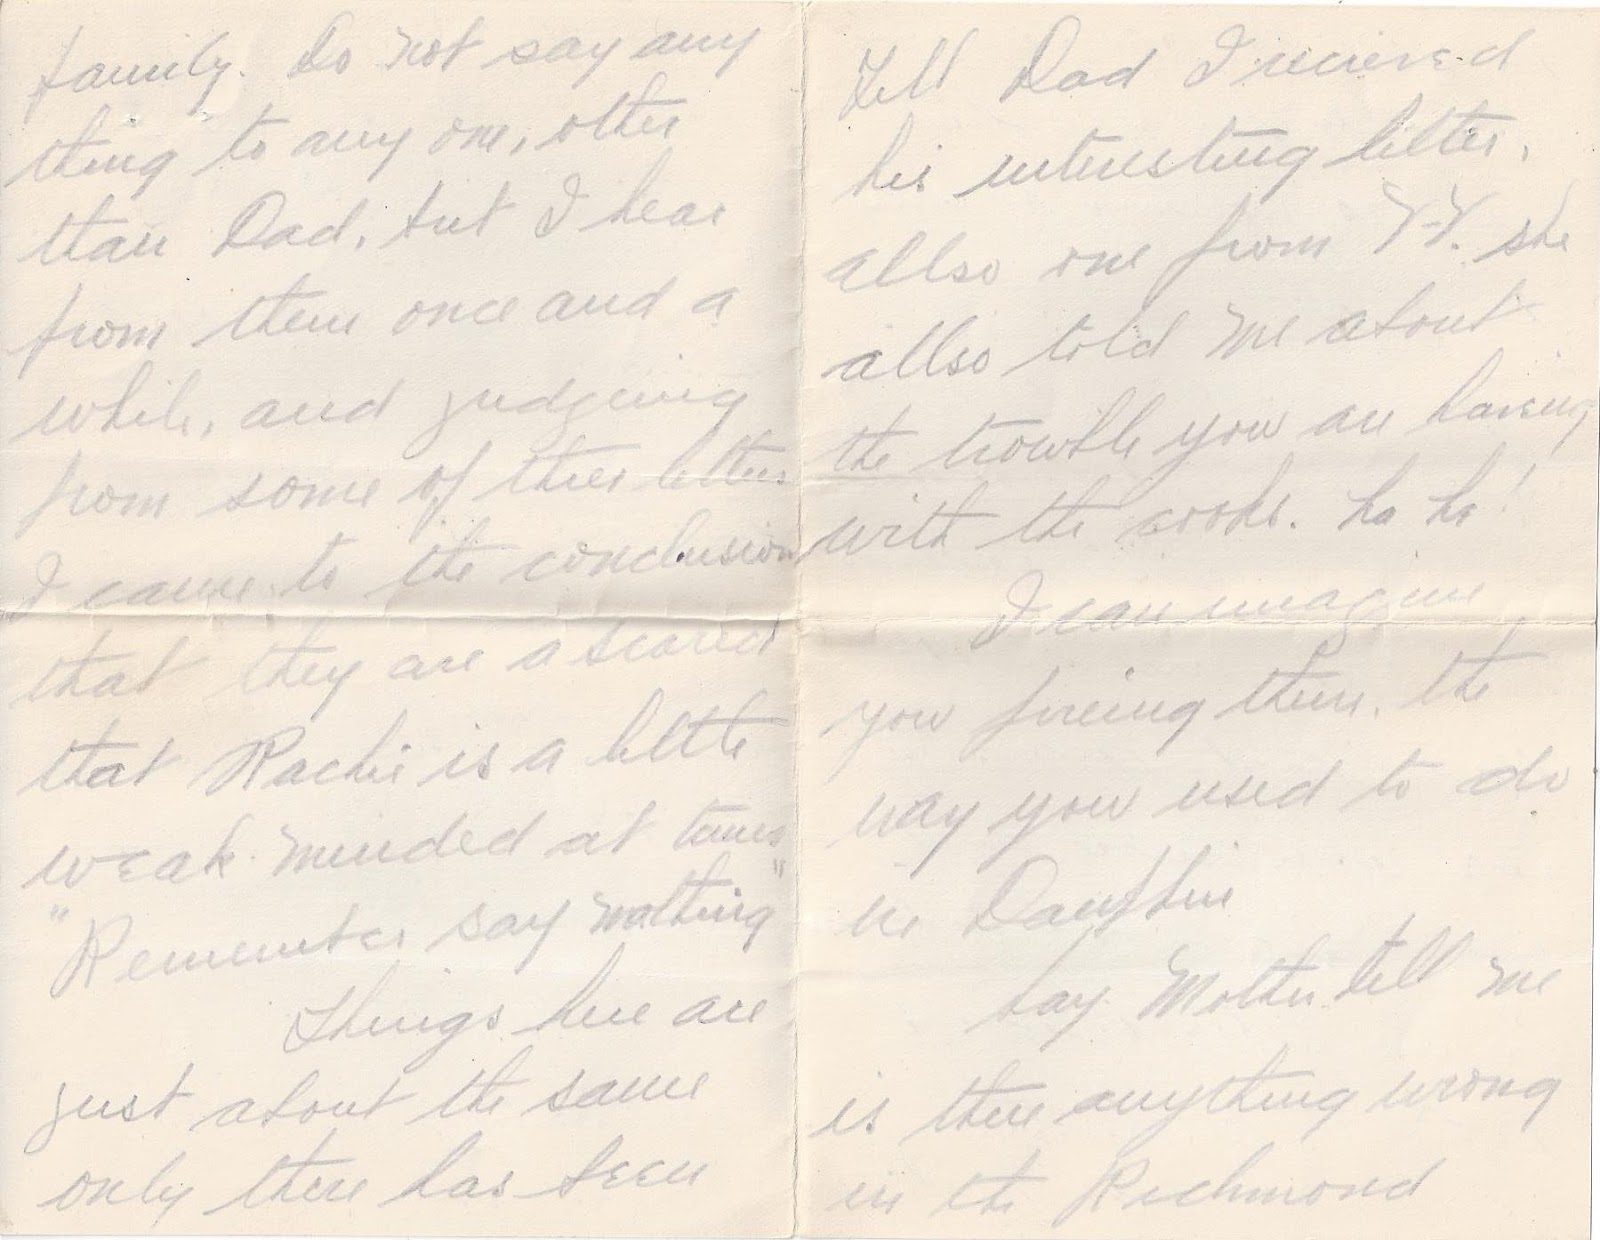 March 8th 1915 Letter Pg 2 from the Charley Bailey Collection